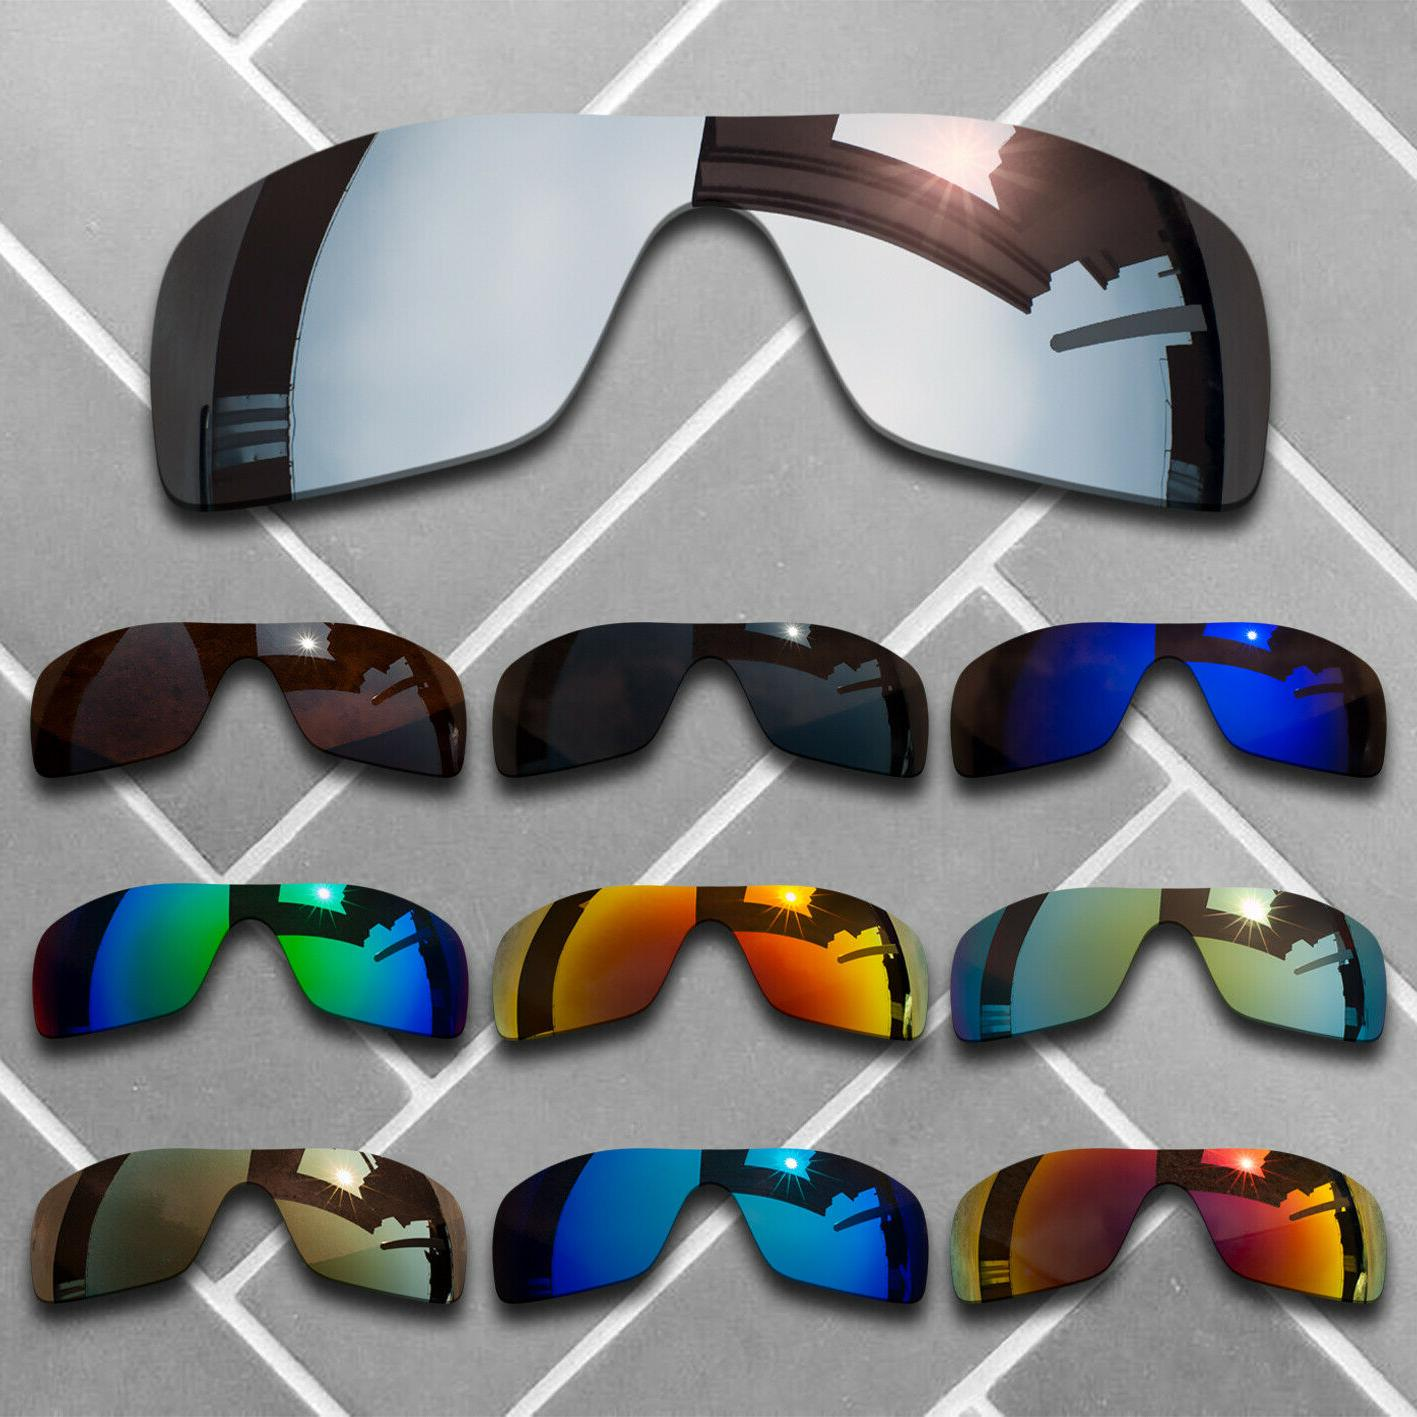 Polarized Replacement Lenses for Oakley Batwolf Sunglasses -